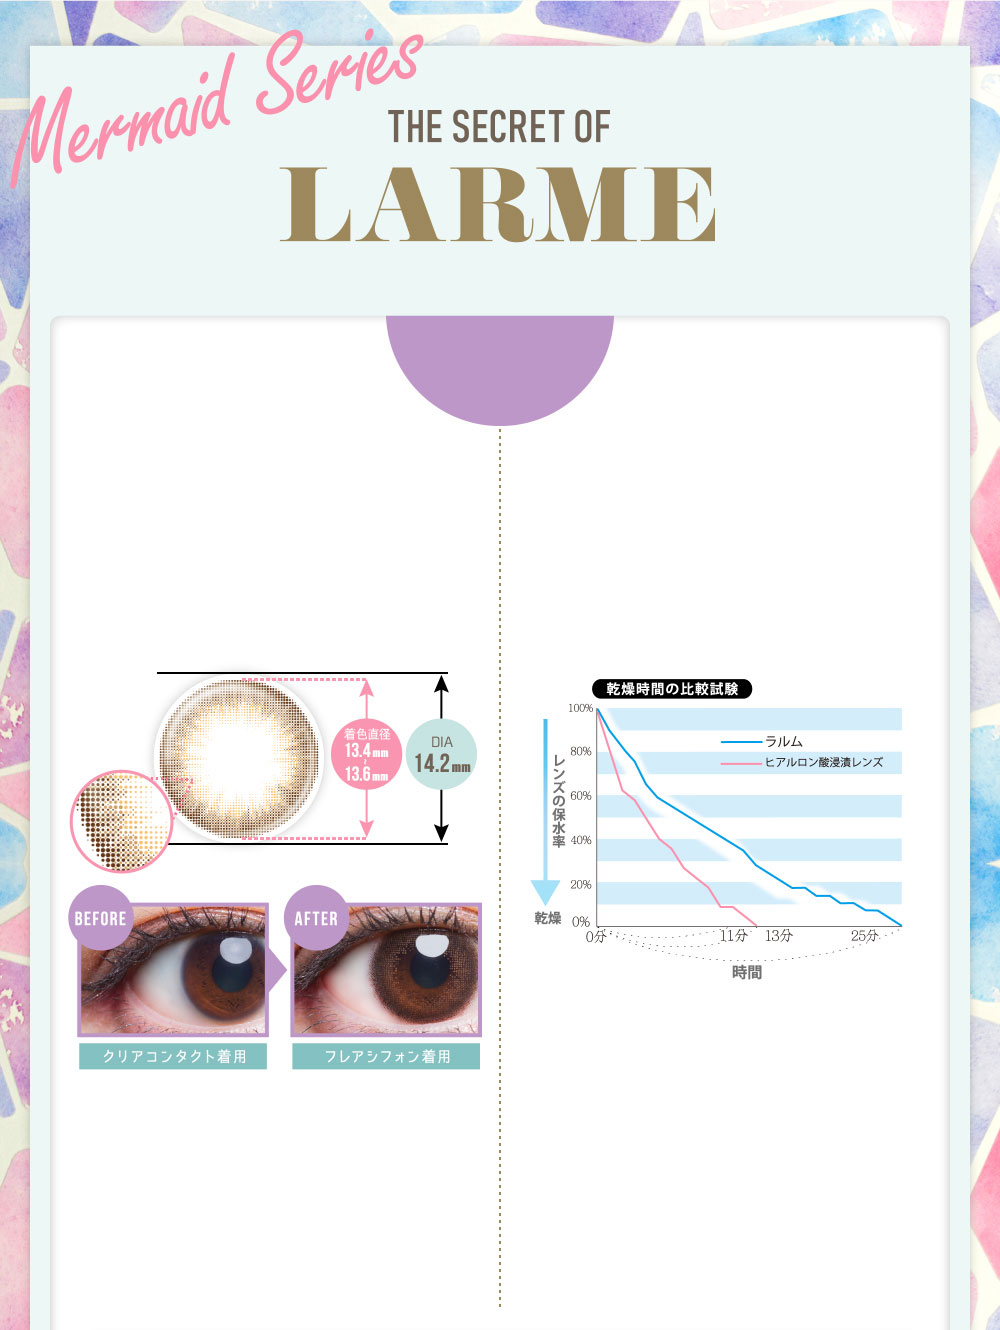 THE SECRET OF LARME